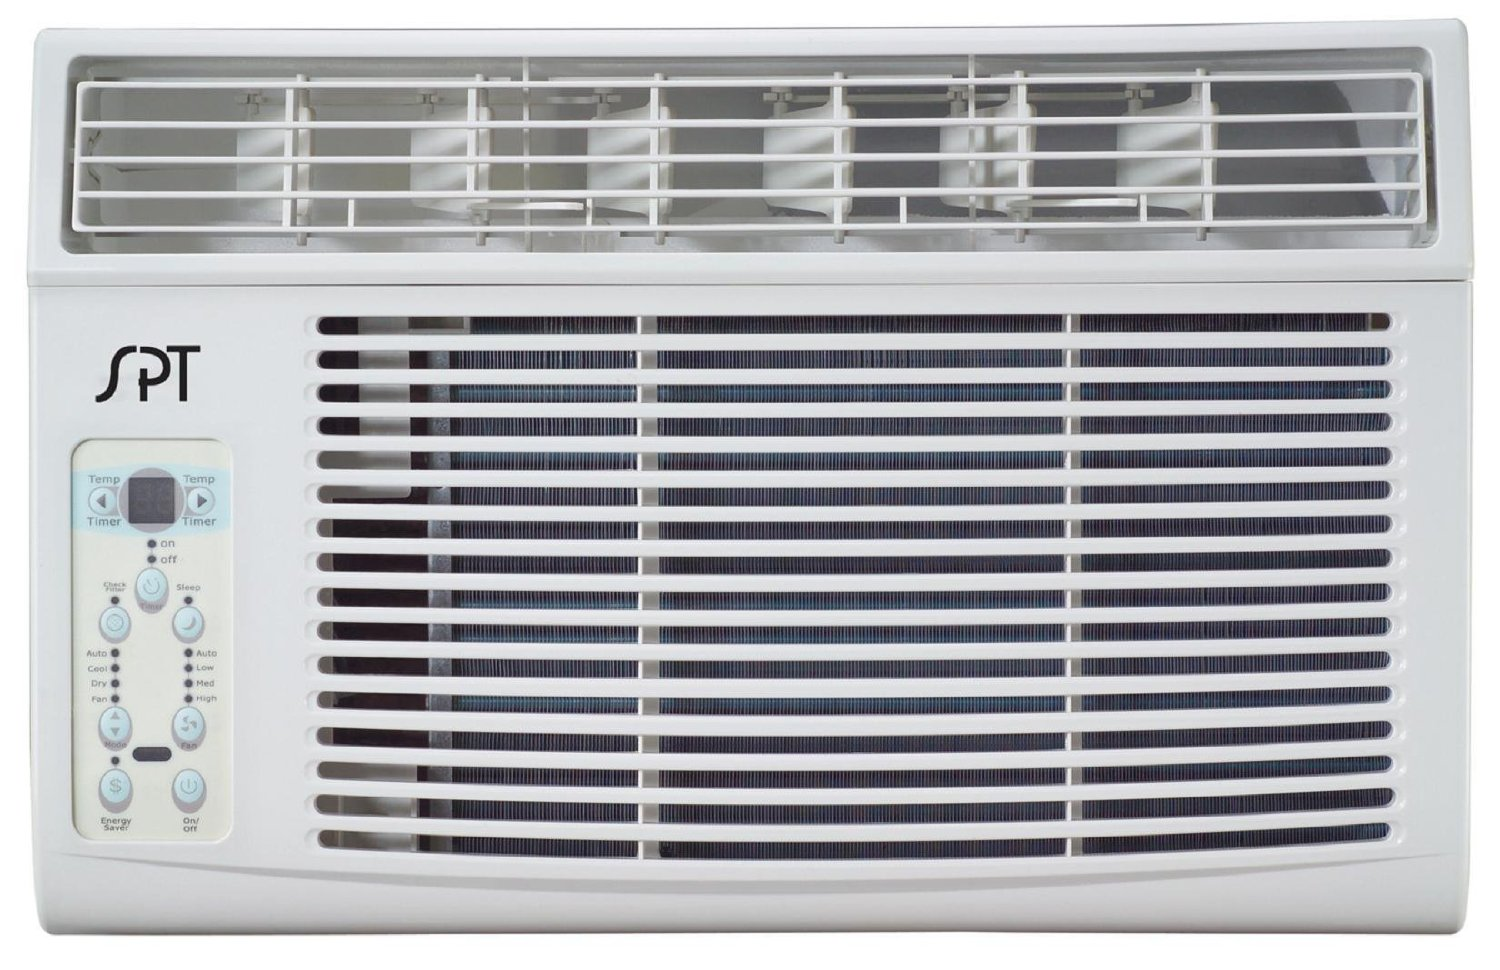 Spt wa 1211s 12000 btu window air conditioner review for 12k btu window air conditioner